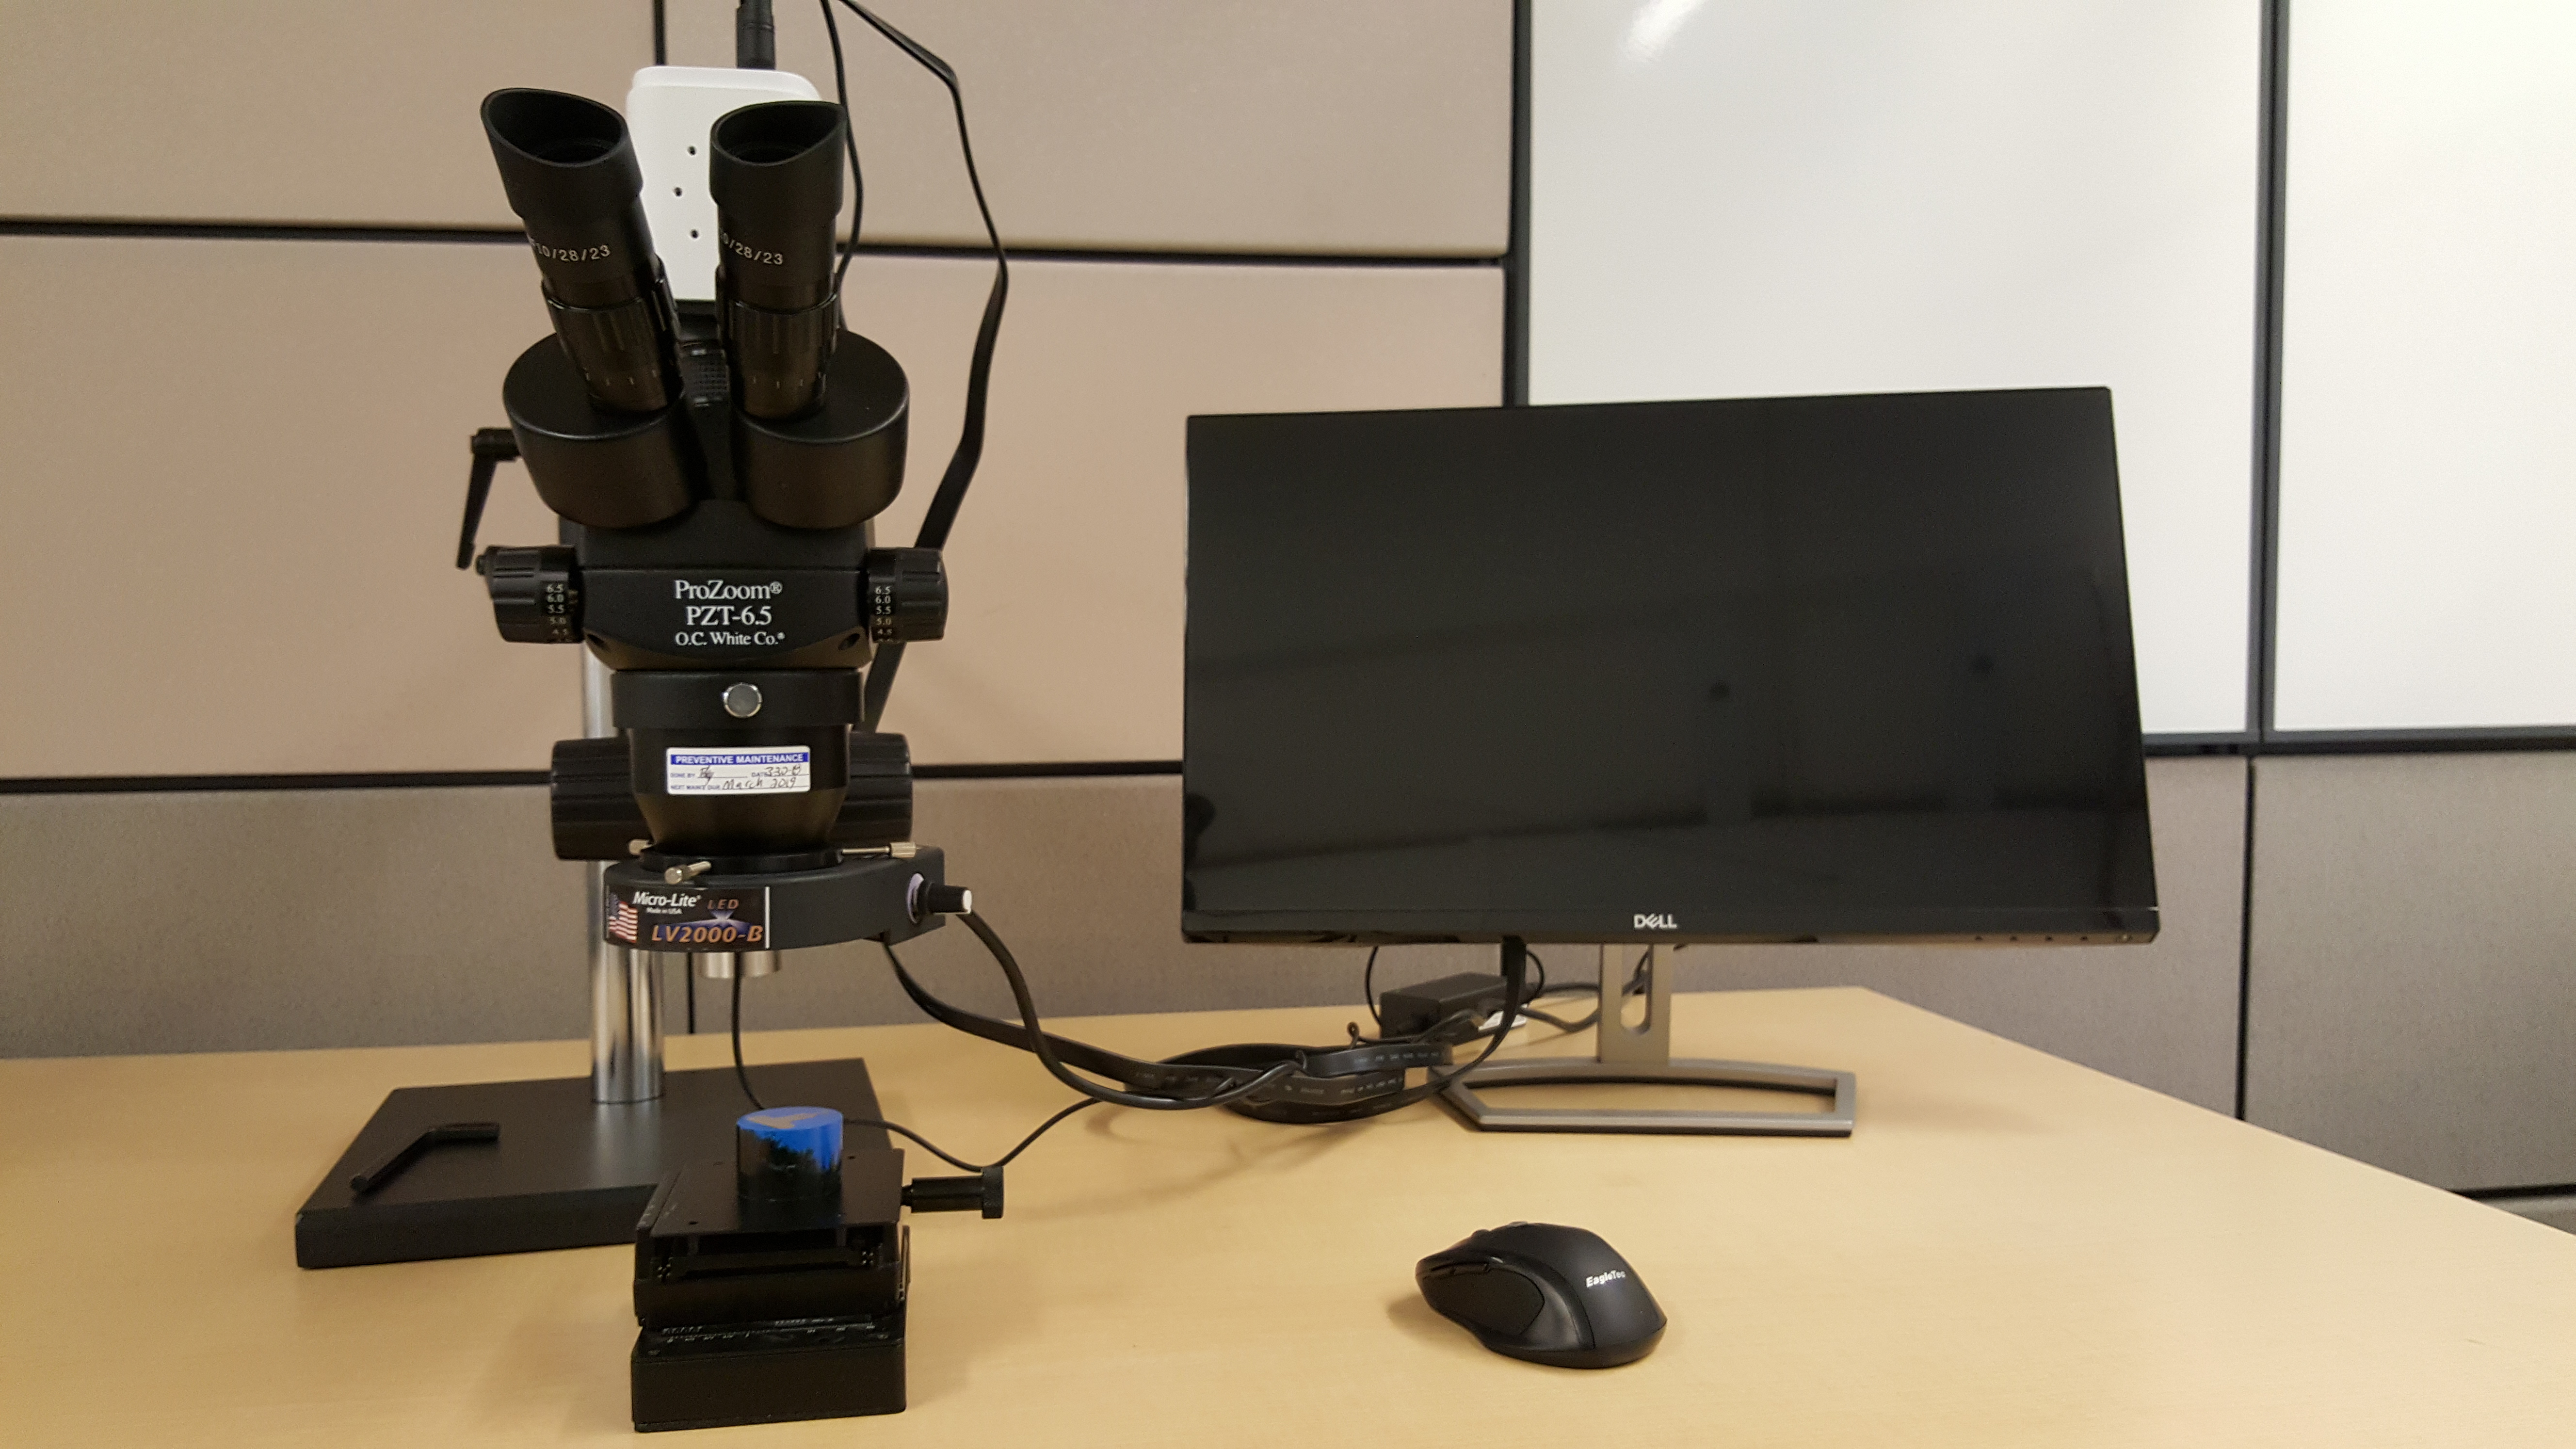 SMS OC White Stereoscope and HD Camera & Measurement System